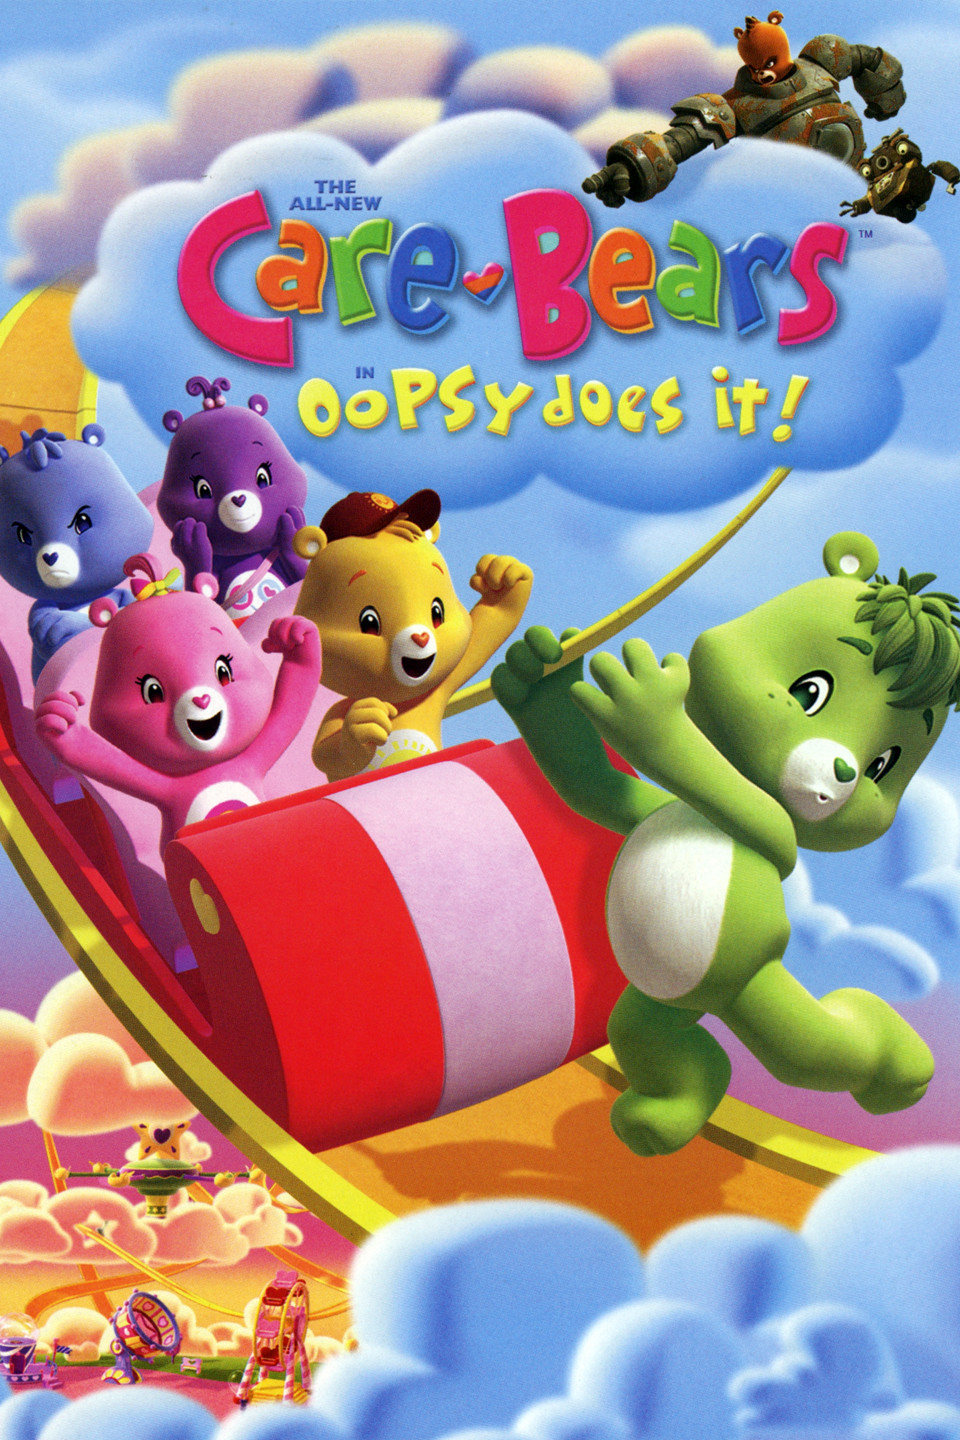 Care Bears: Oopsy Does It! wwwgstaticcomtvthumbdvdboxart170340p170340